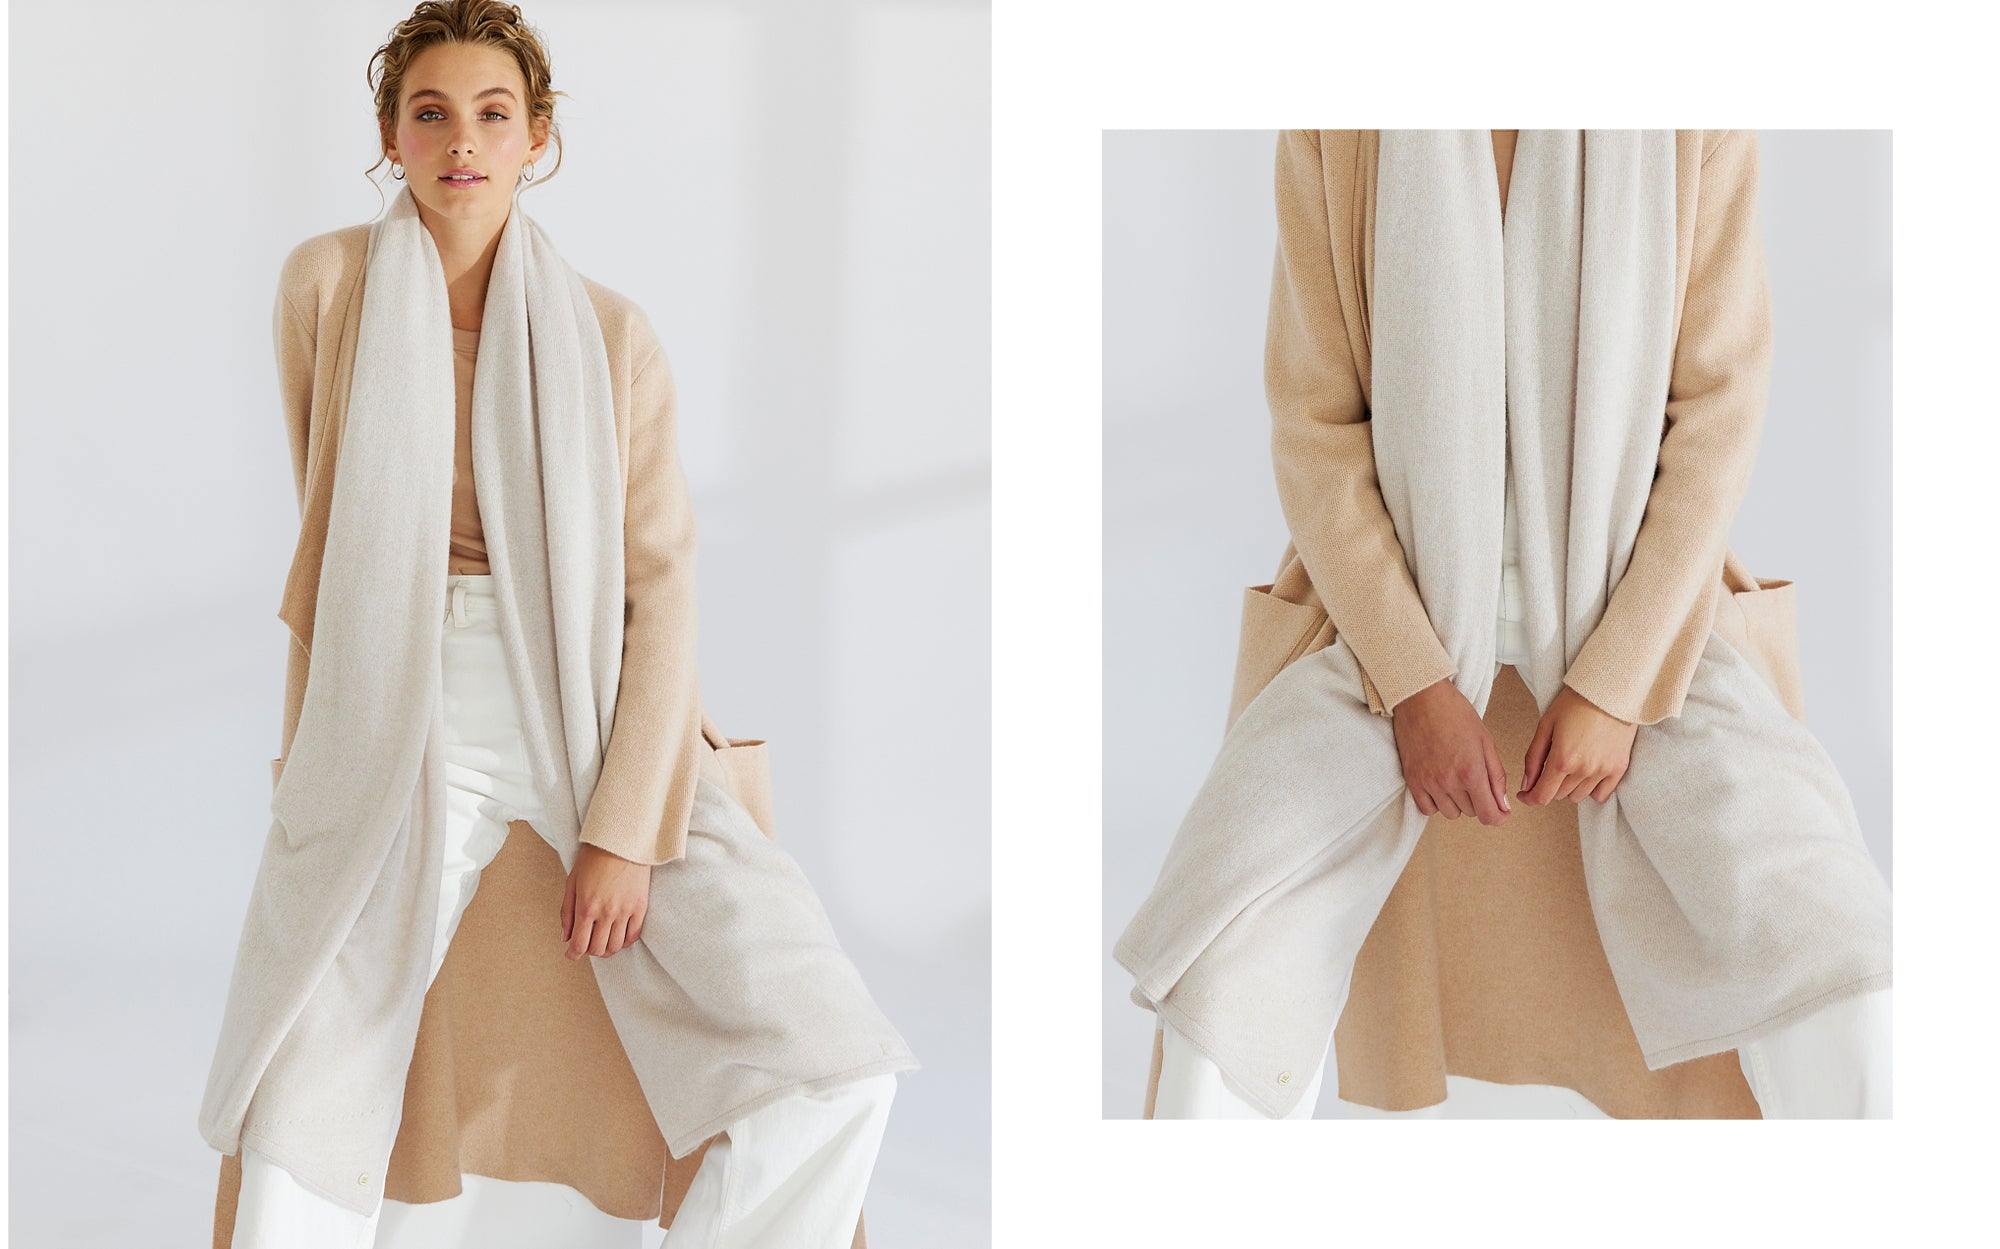 The Ada Lapel Coat and Pure Cashmere Travel Wrap featured in Mia Fratino's Fall/Winter 2021 campaign